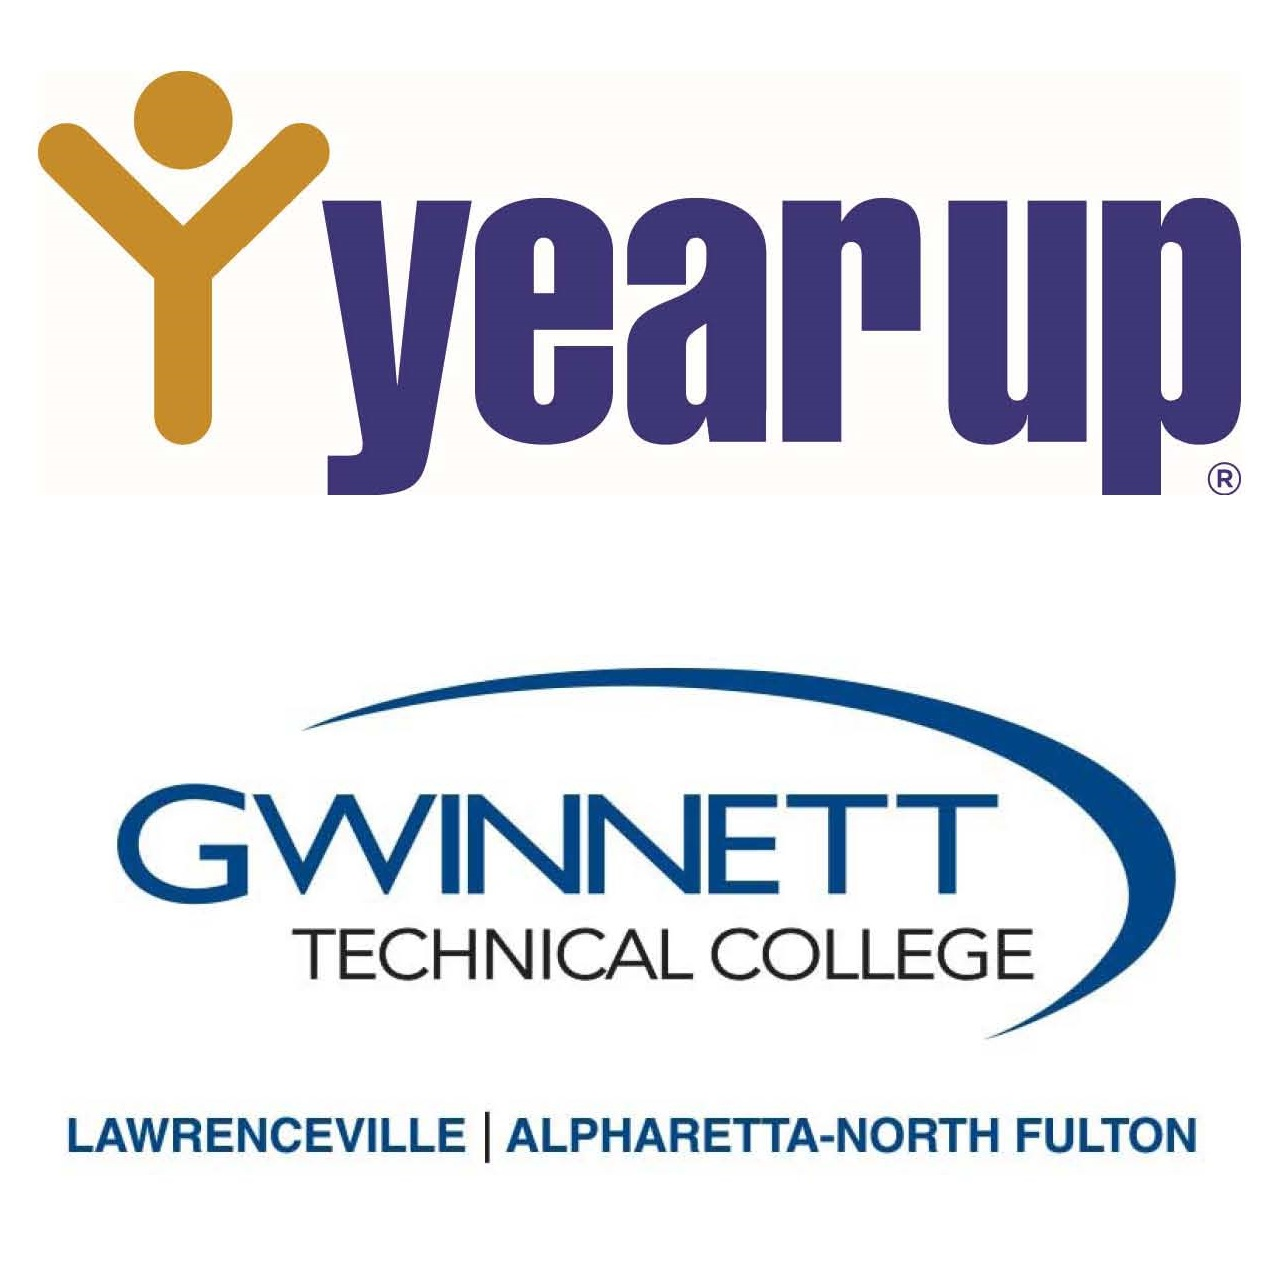 Year Up Atlanta Partners With Gwinnett Technical College To Help Meet Market Demand For Skilled Talent